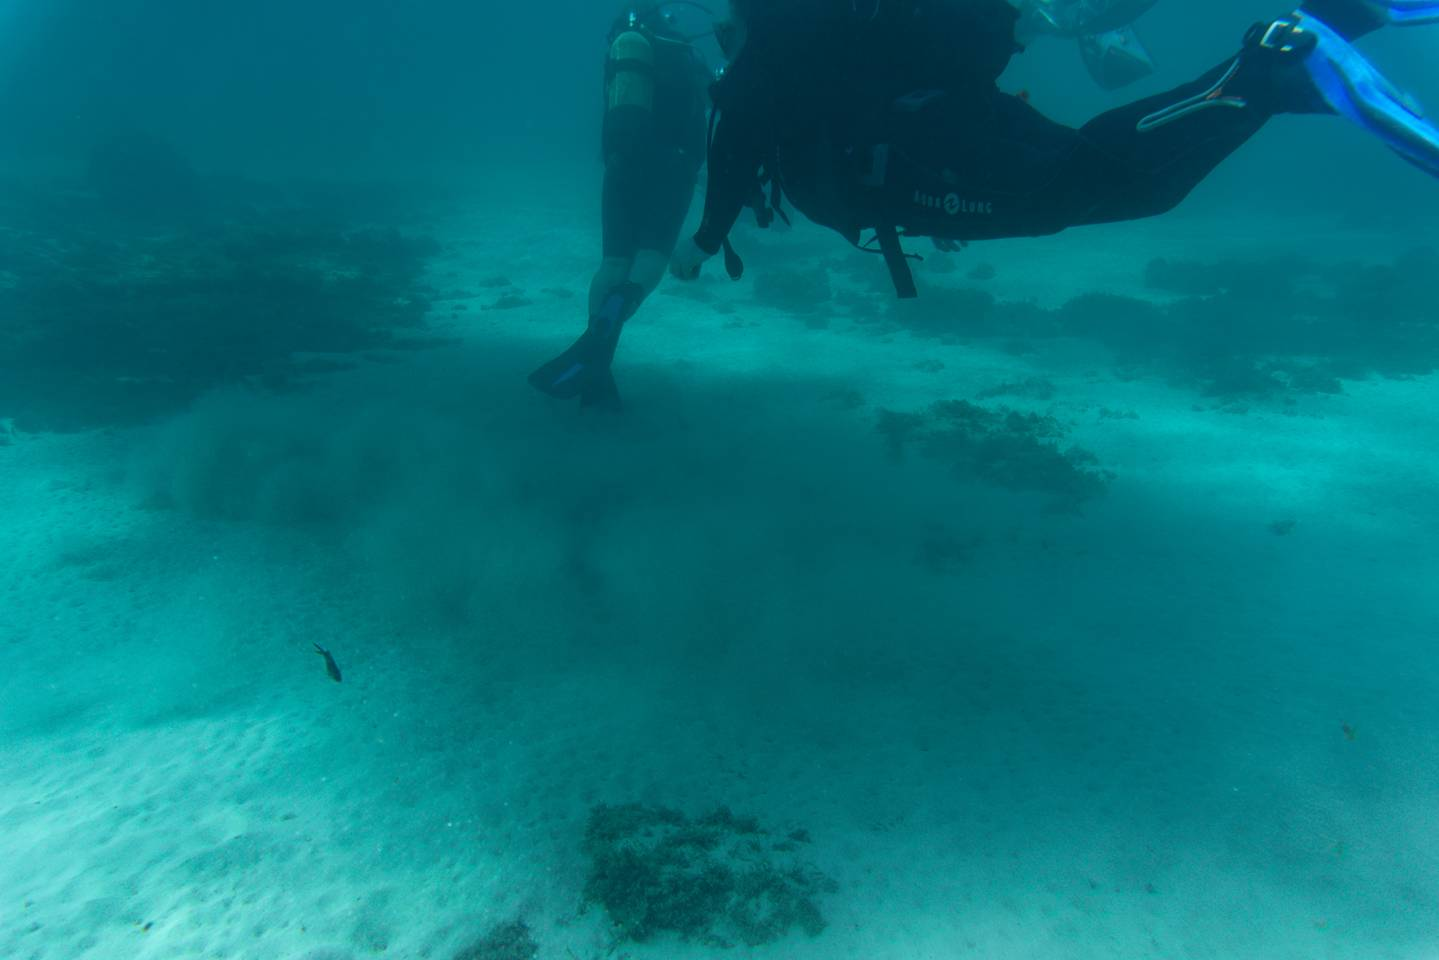 Buoyancy training for the Open Water Diver Course